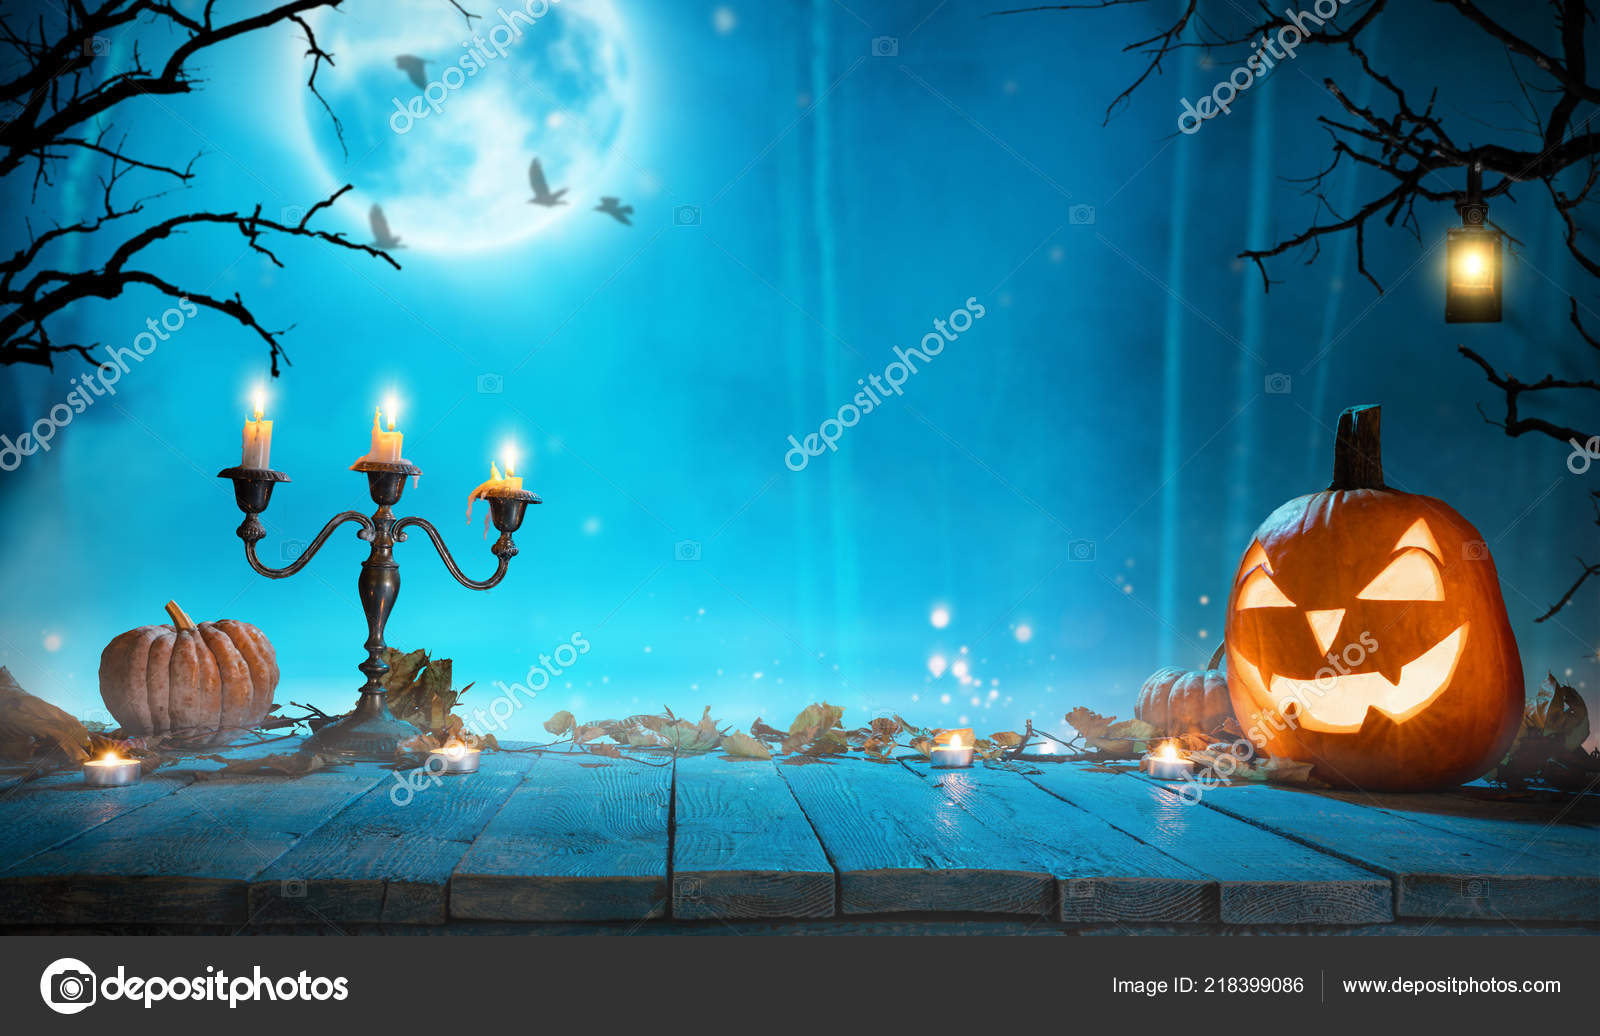 Spooky Halloween Pumpkin Forest Scary Halloween Background Free Space Text Stock Photo C Jag Cz 218399086